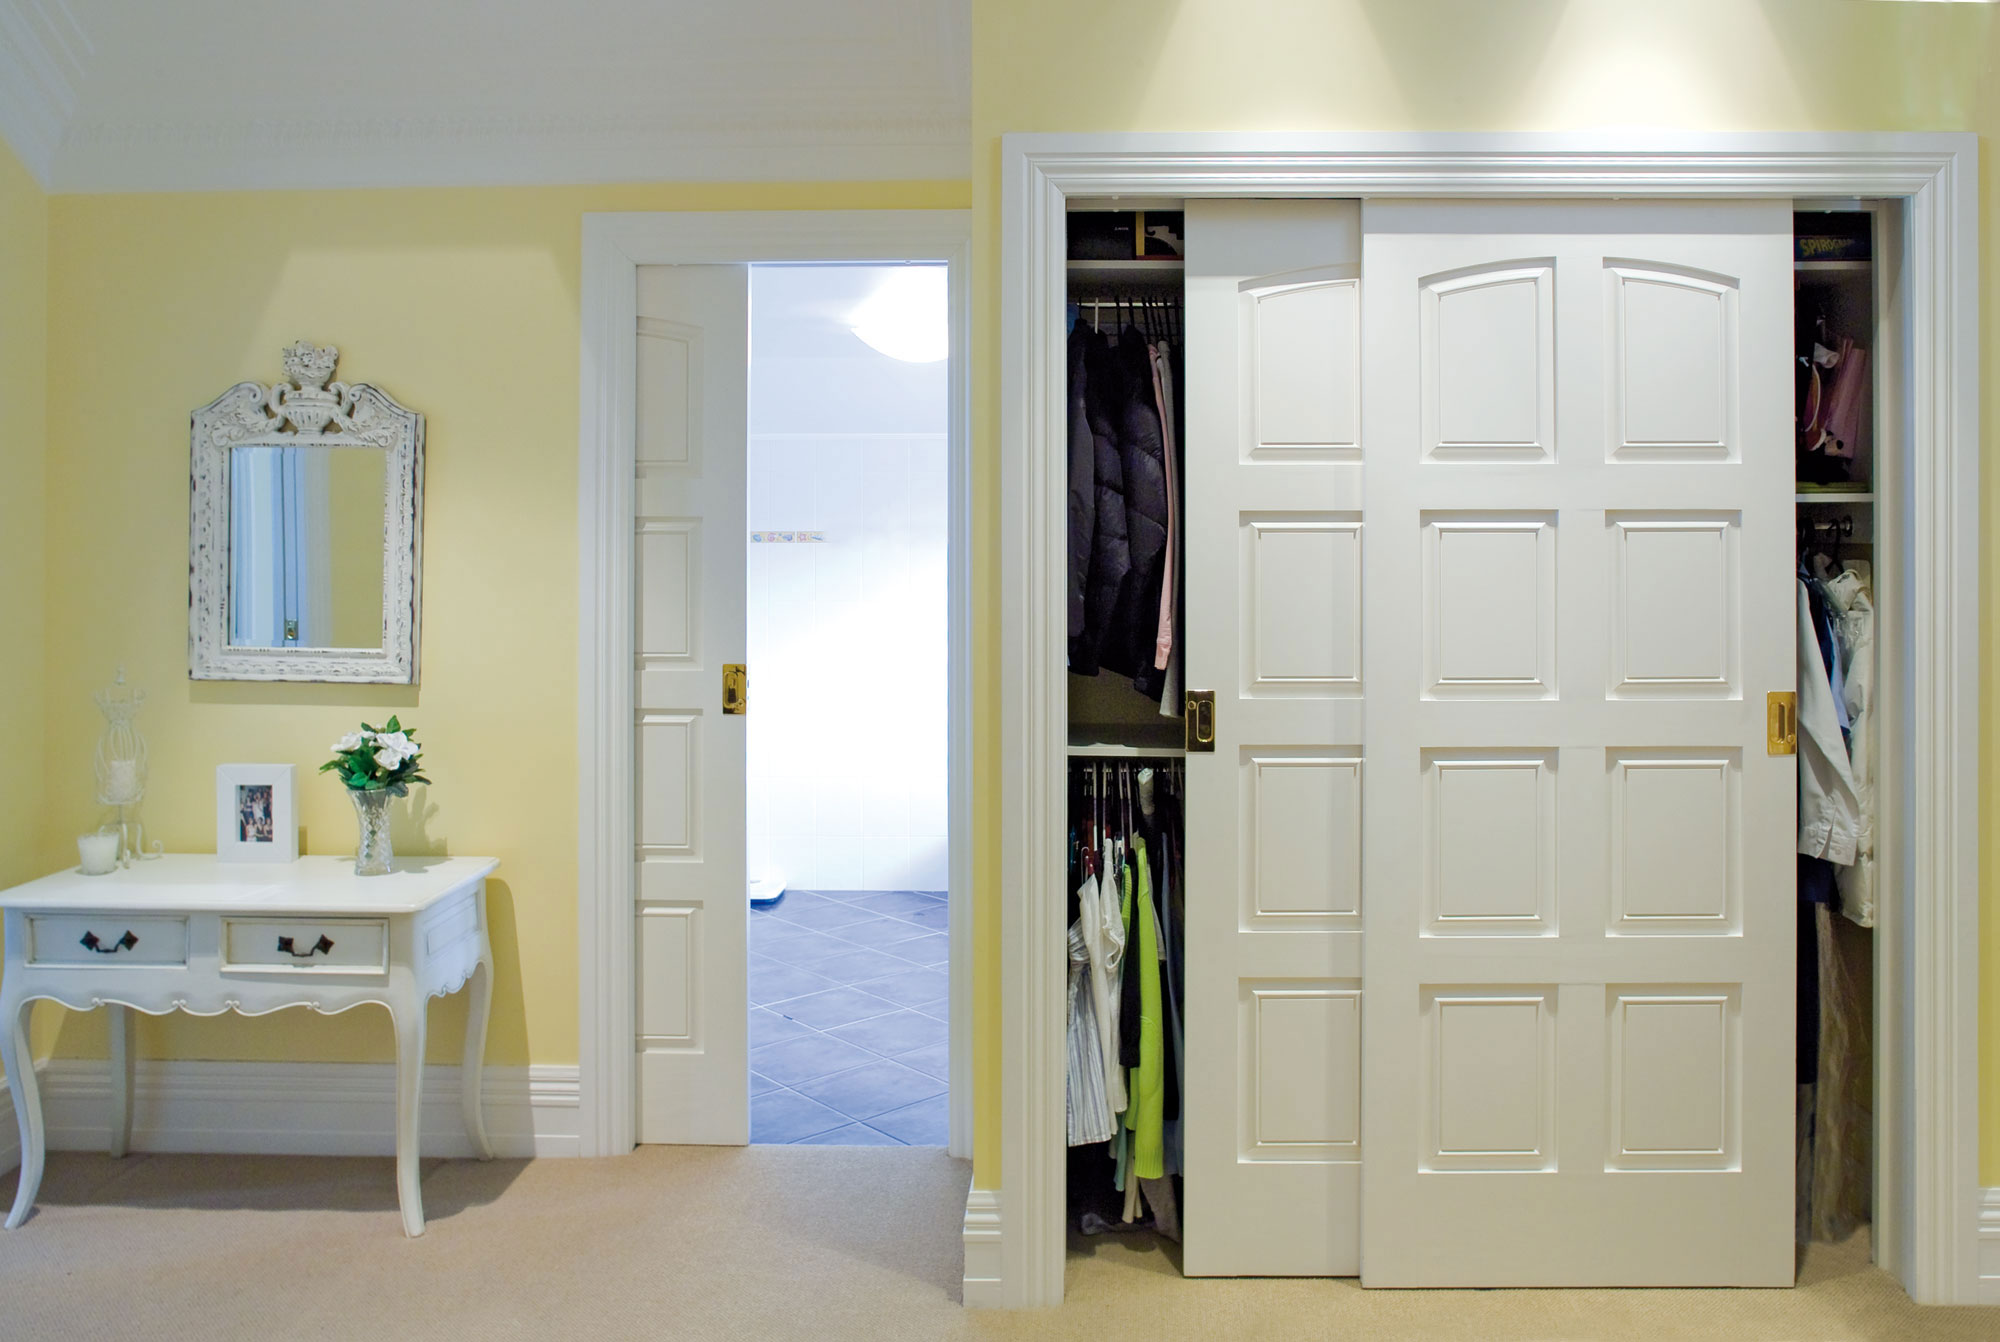 Top Mount Bi-Parting Closet Sliding Door Track